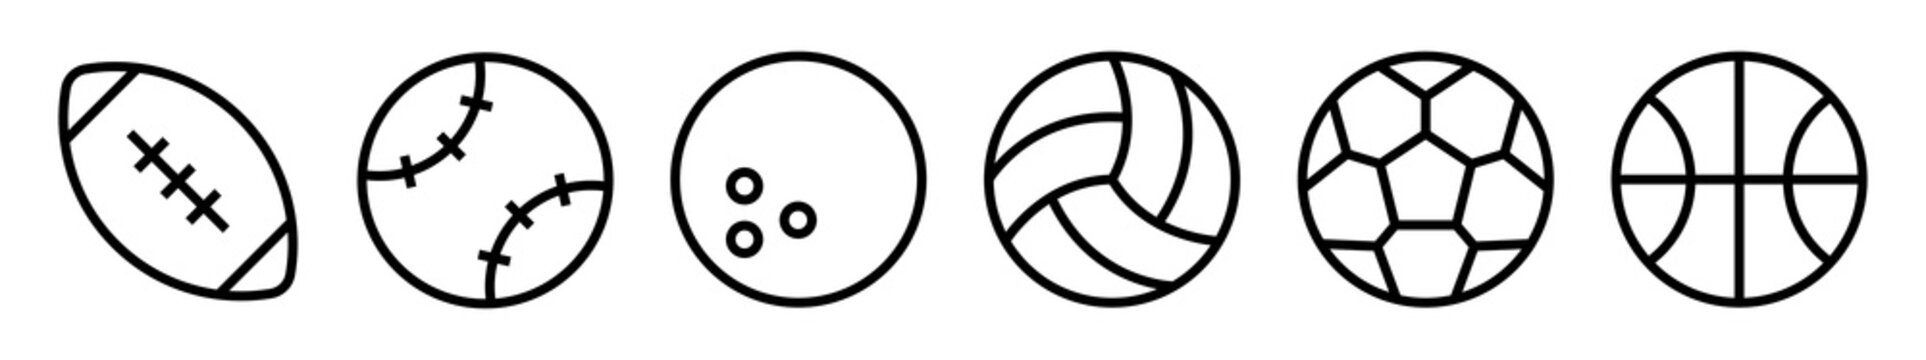 Sport balls vector icons set. Ball simple icon. Balls silhouettes for football, baseball, basketball, tennis, volleyball isolated on white background. Vector illustration.